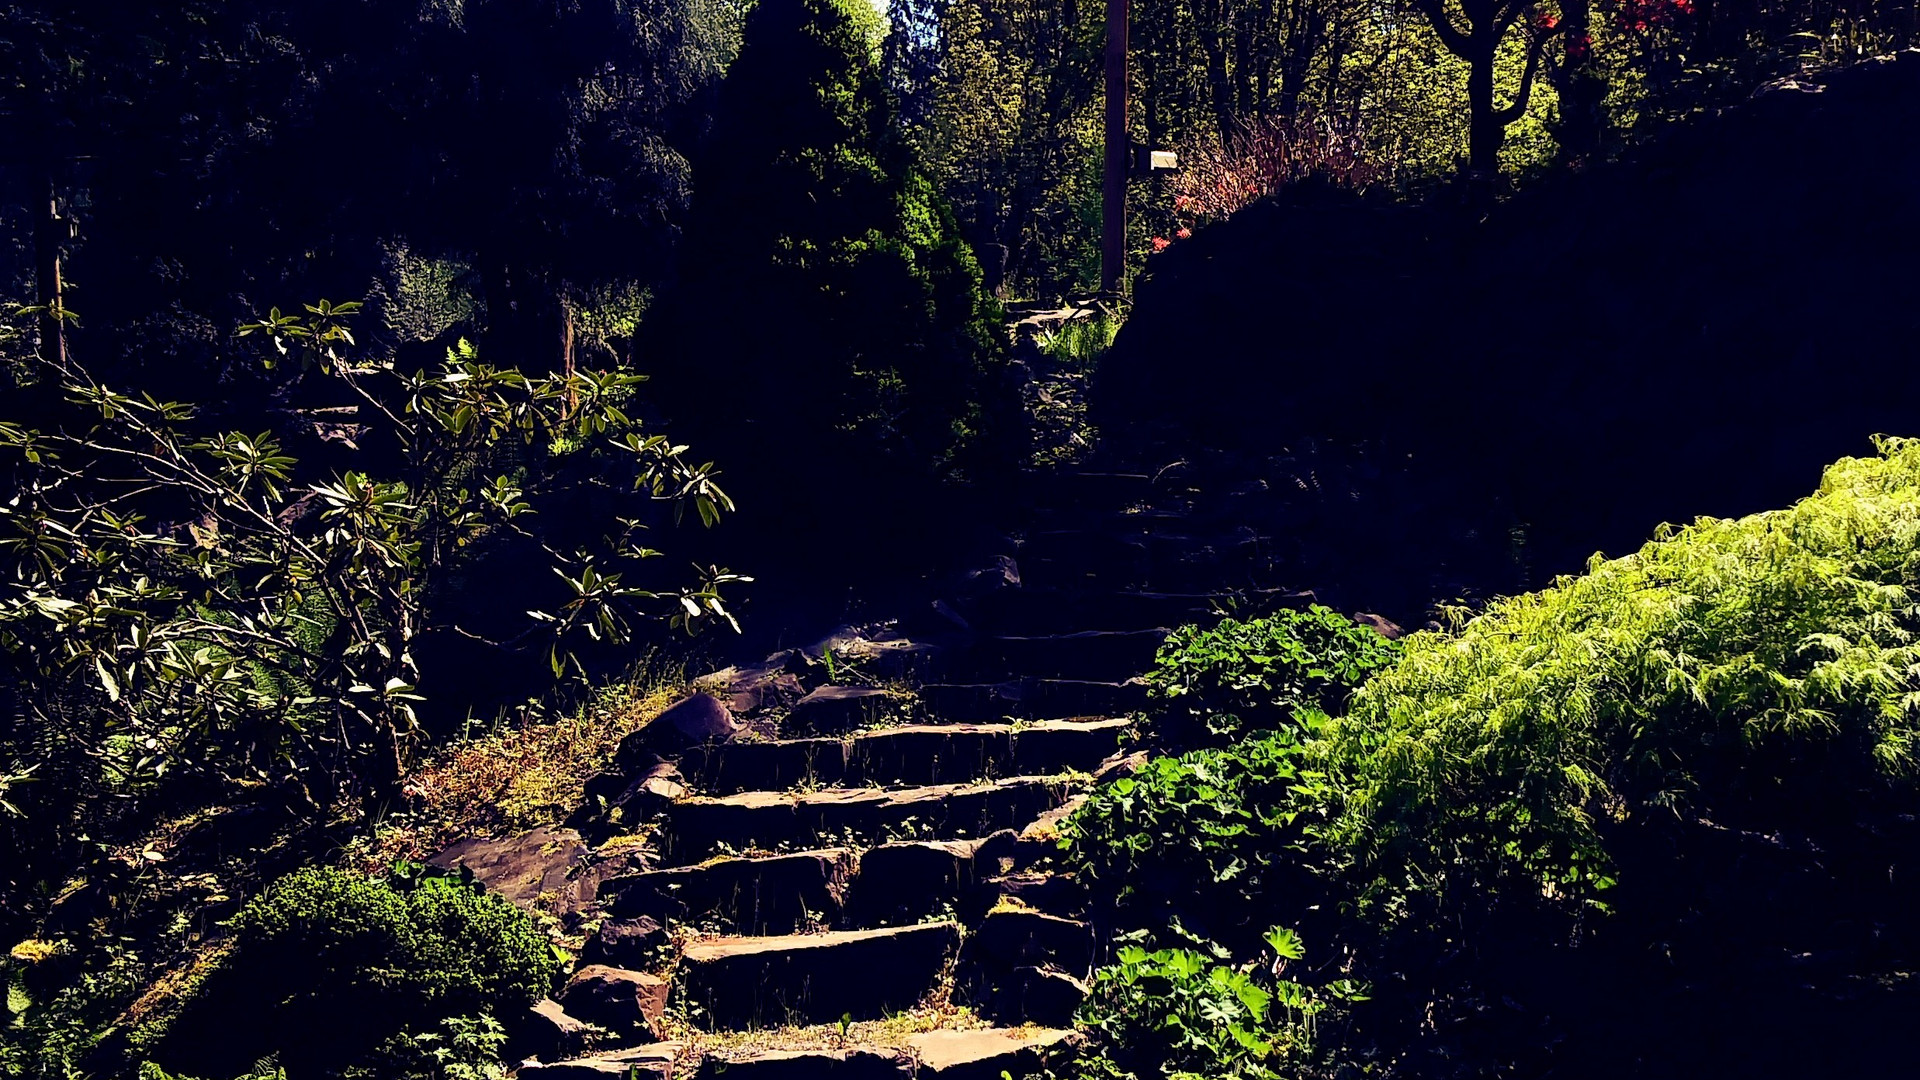 Down the stone stairs to the lower pond